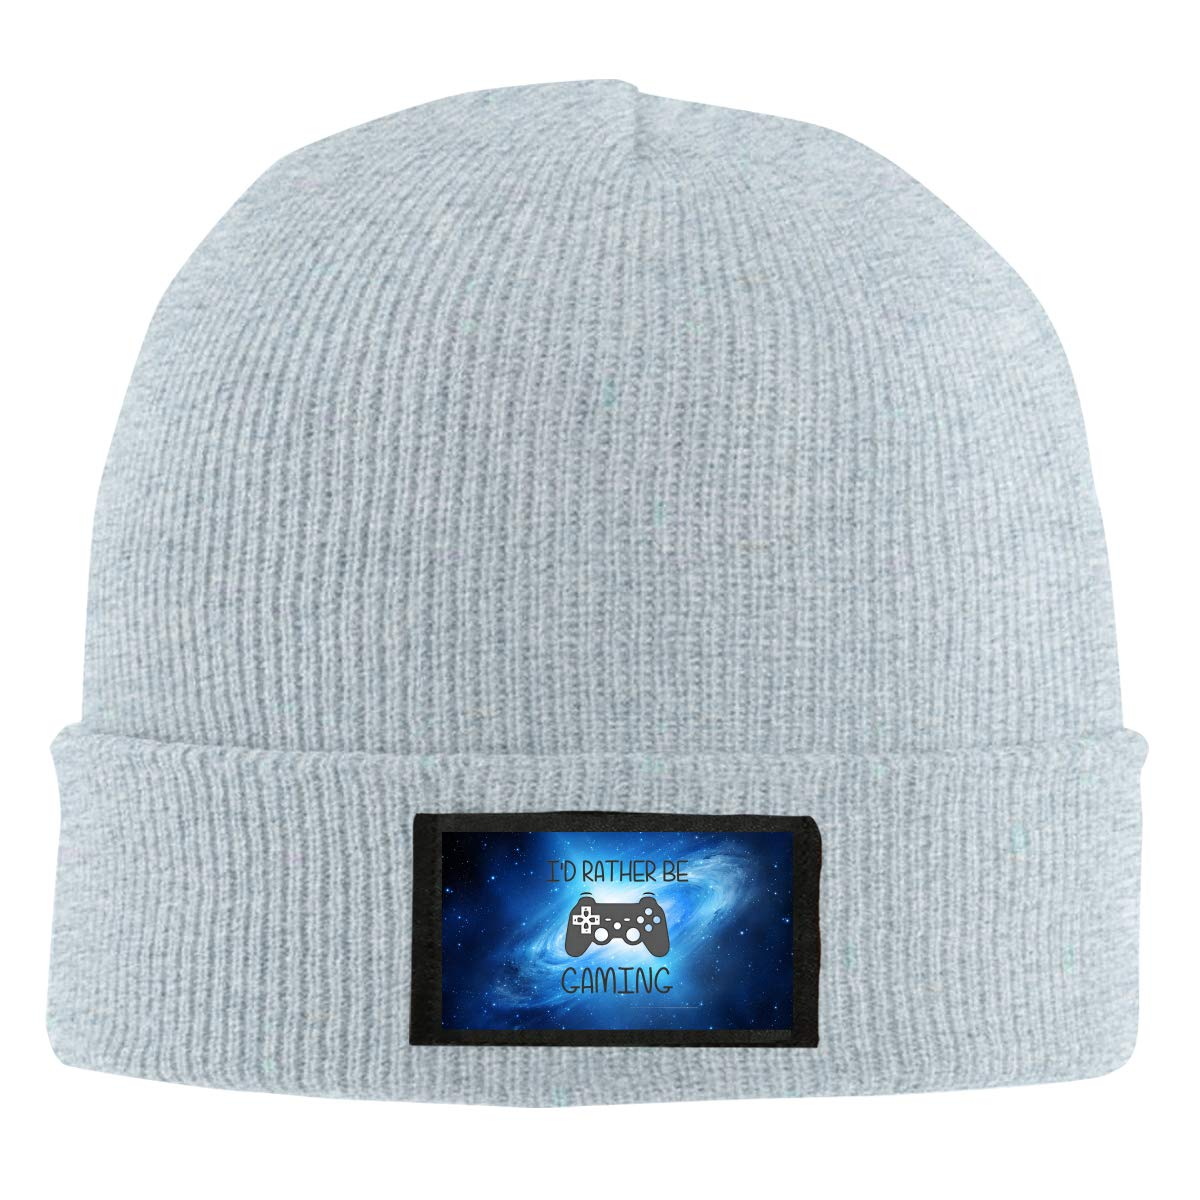 Id Rather Be Playing Video Games Winter Beanie Hat Knit Hat Cap for Men /& Women